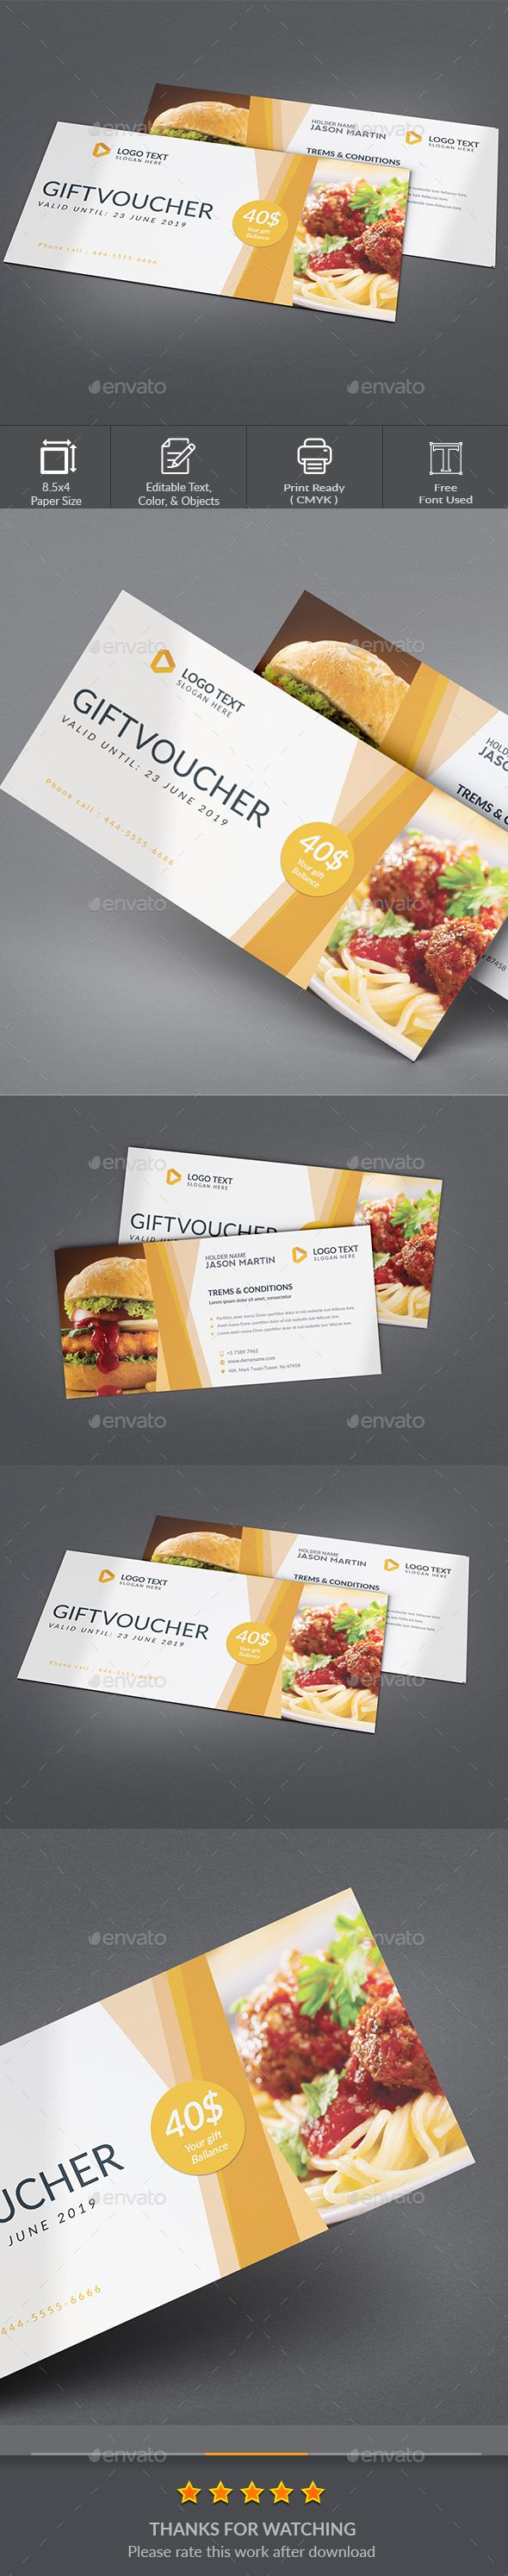 Gift Voucher Template  Gift Vouchers Print Templates And Font Logo